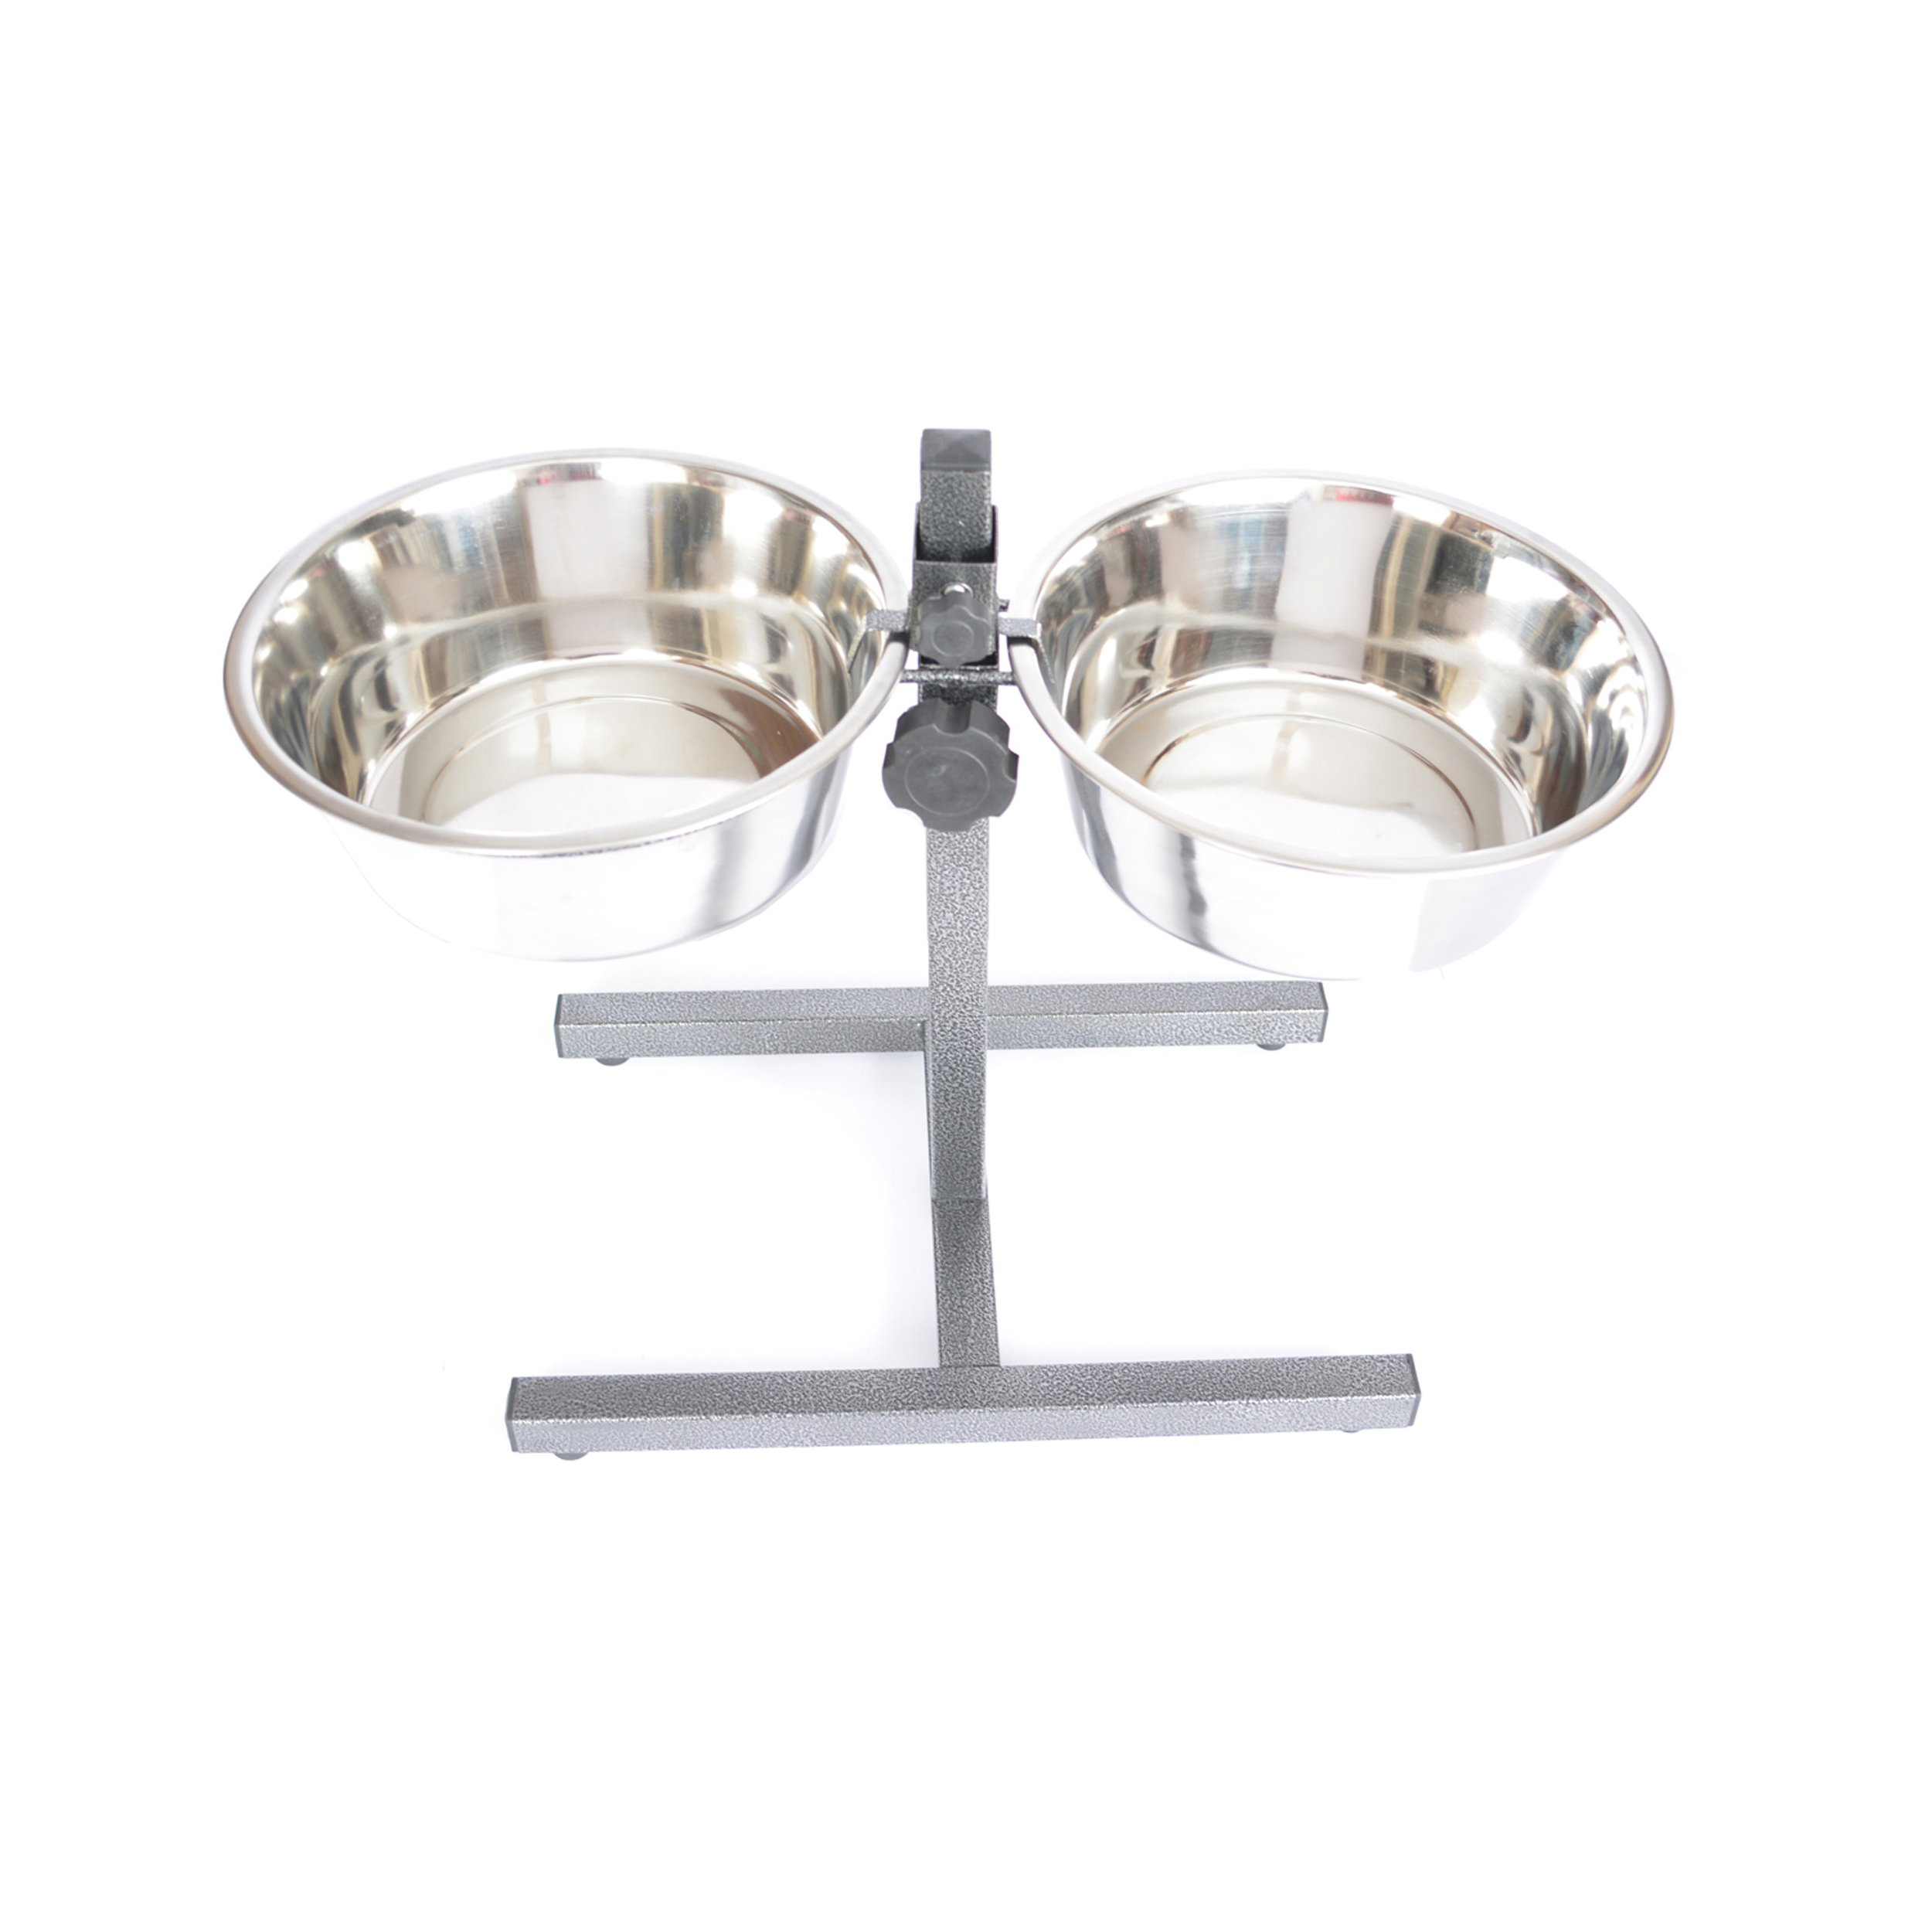 Iconic Pet 12-Cup Adjustable Stainless Steel Pet Double Diner, 96-Ounce by Iconic Pet (Image #2)